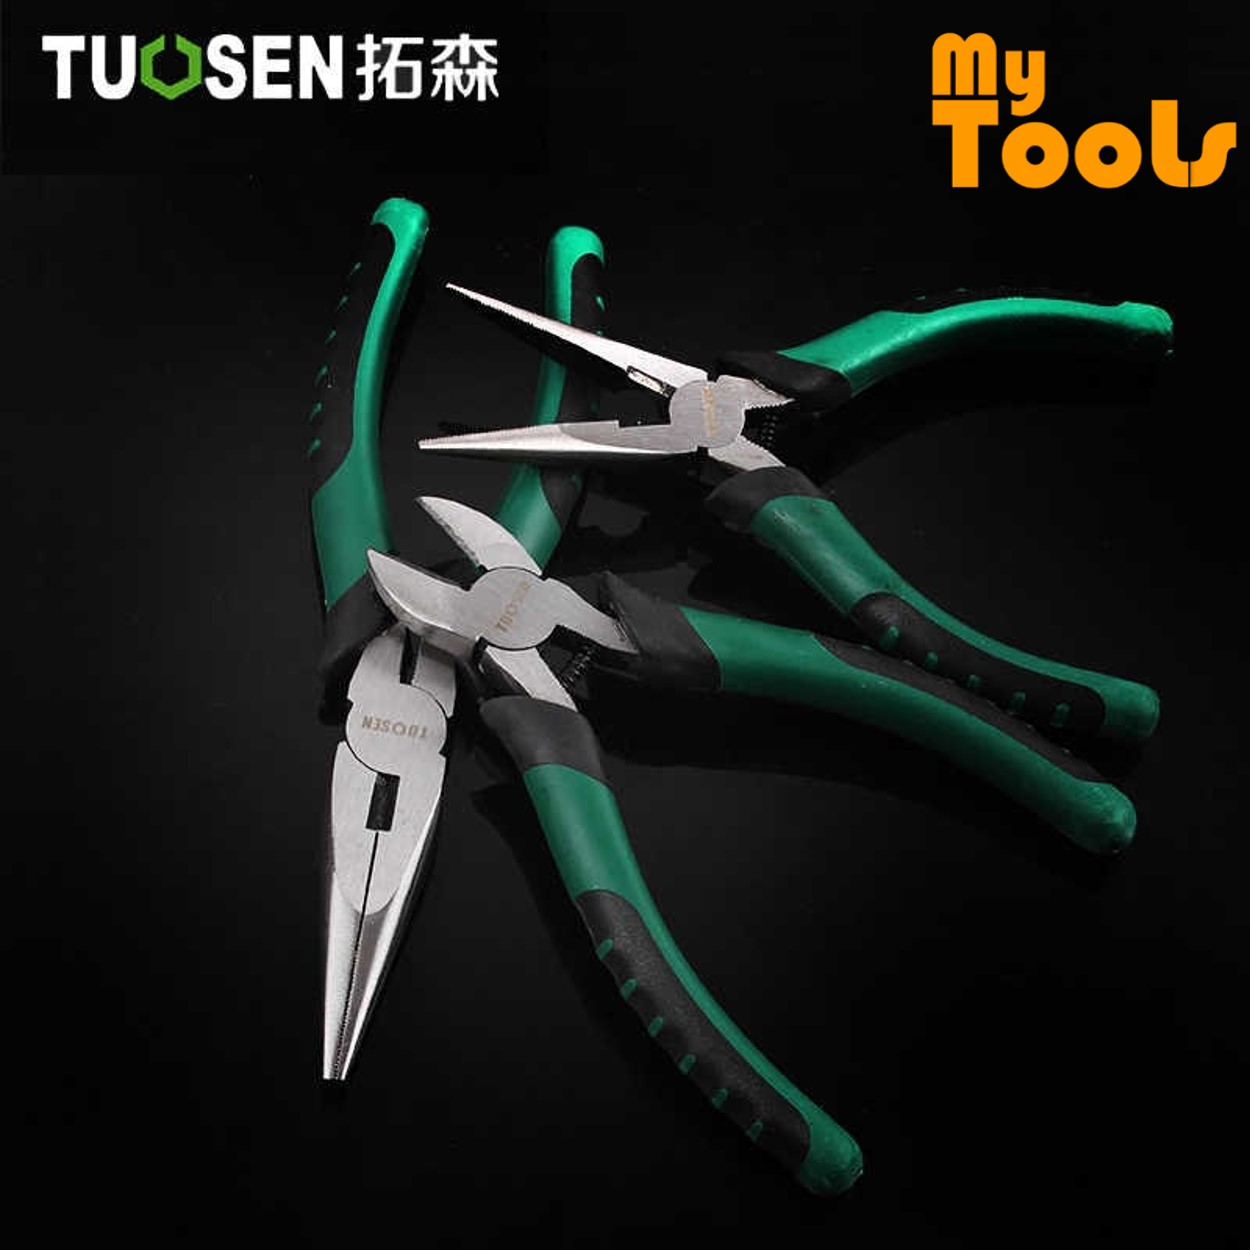 Mytools Premium TUOSEN 6 Inch / 8 Inch Steel Long Nose Pliers Tool Sharp Nose Pliers Cutter